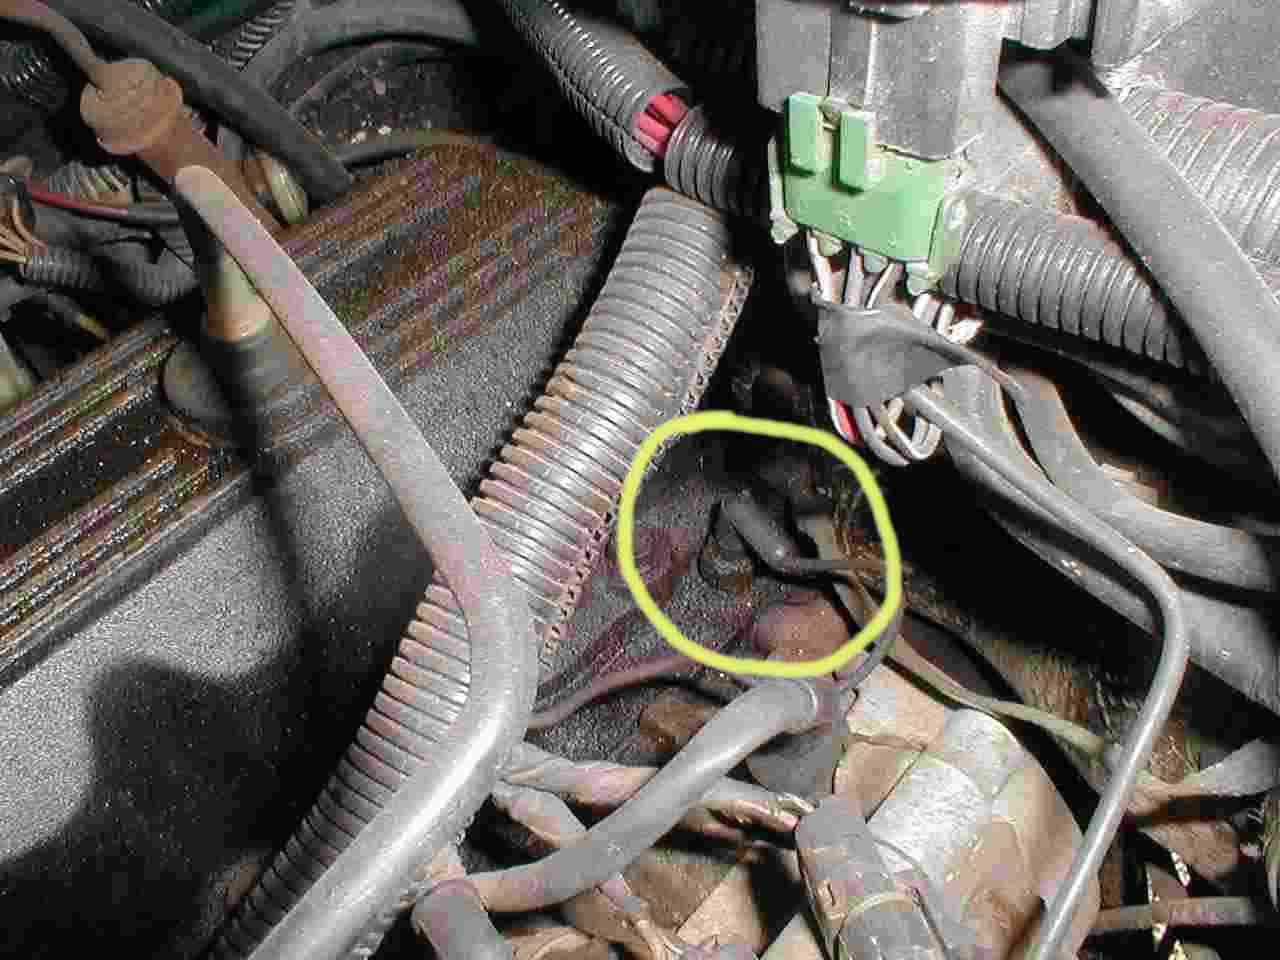 Jeep Cherokee Engines Renix Non Ho Engine Sensor Diagnostics Block Coolant Drain Plug Almost Sensors